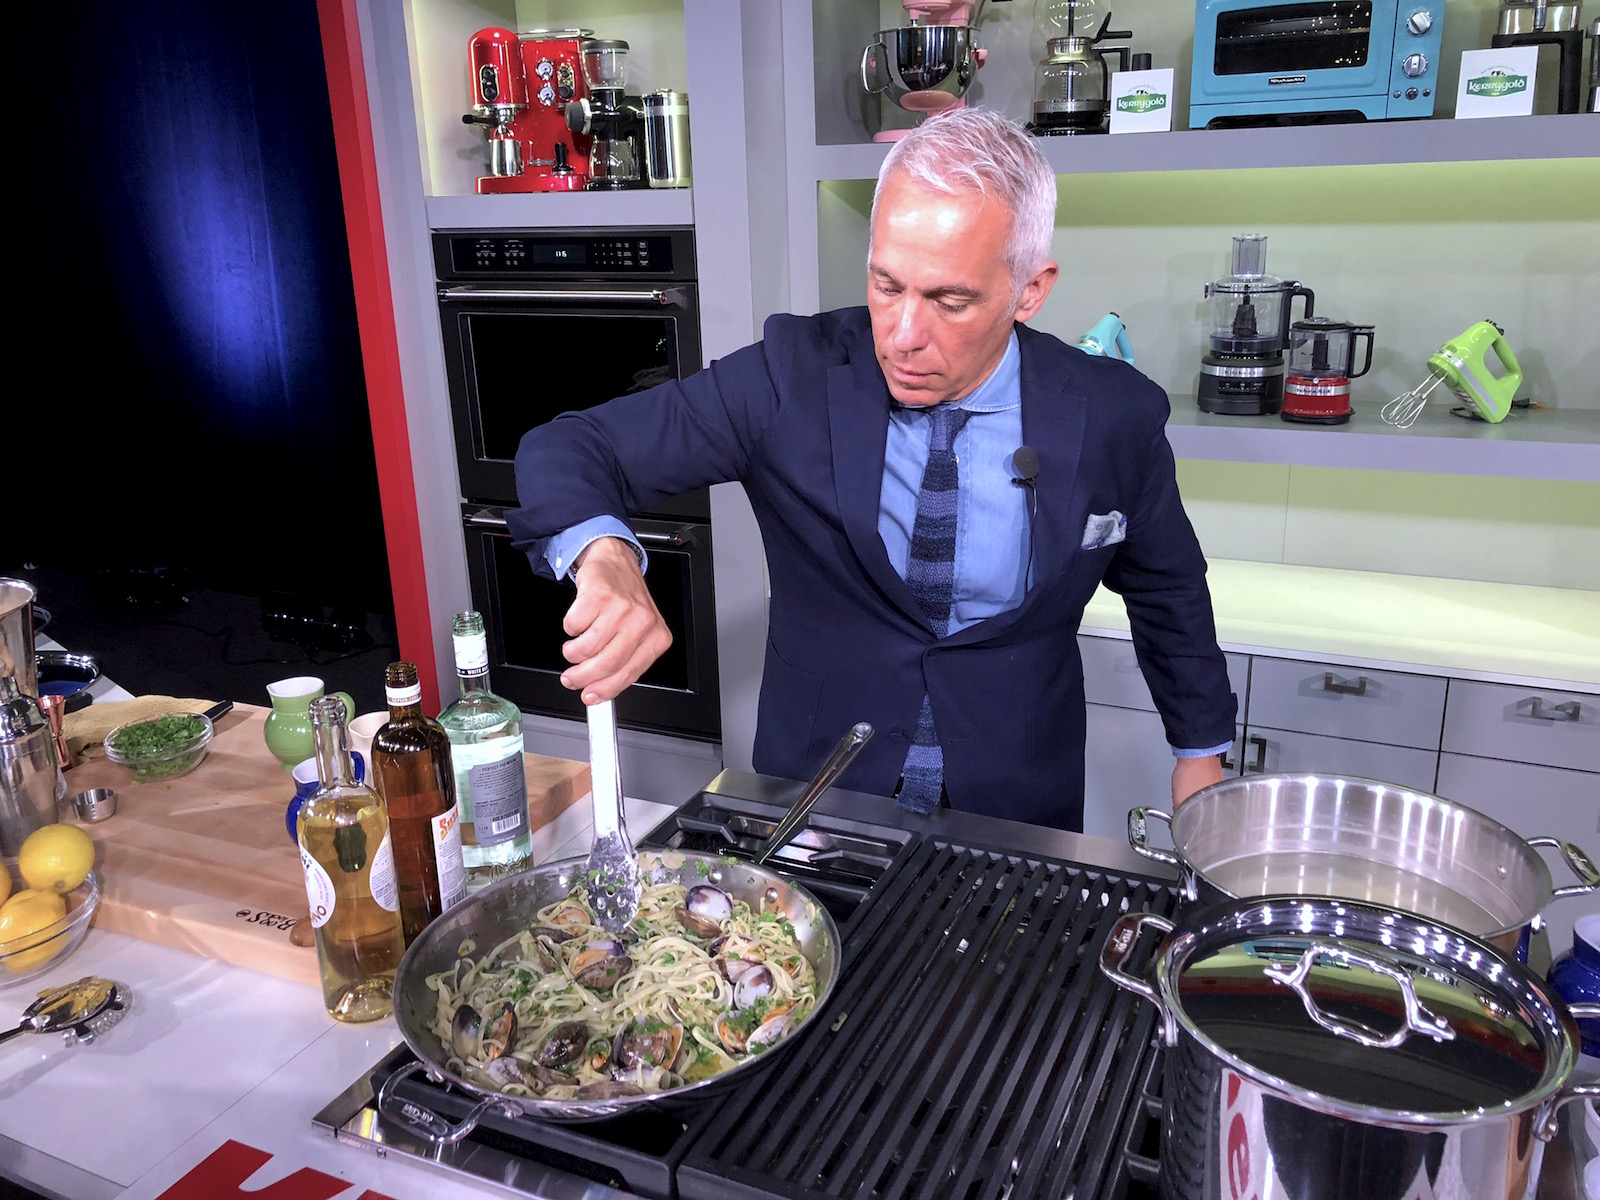 5 Tips for Perfect Linguine with Clams from Geoffrey Zakarian